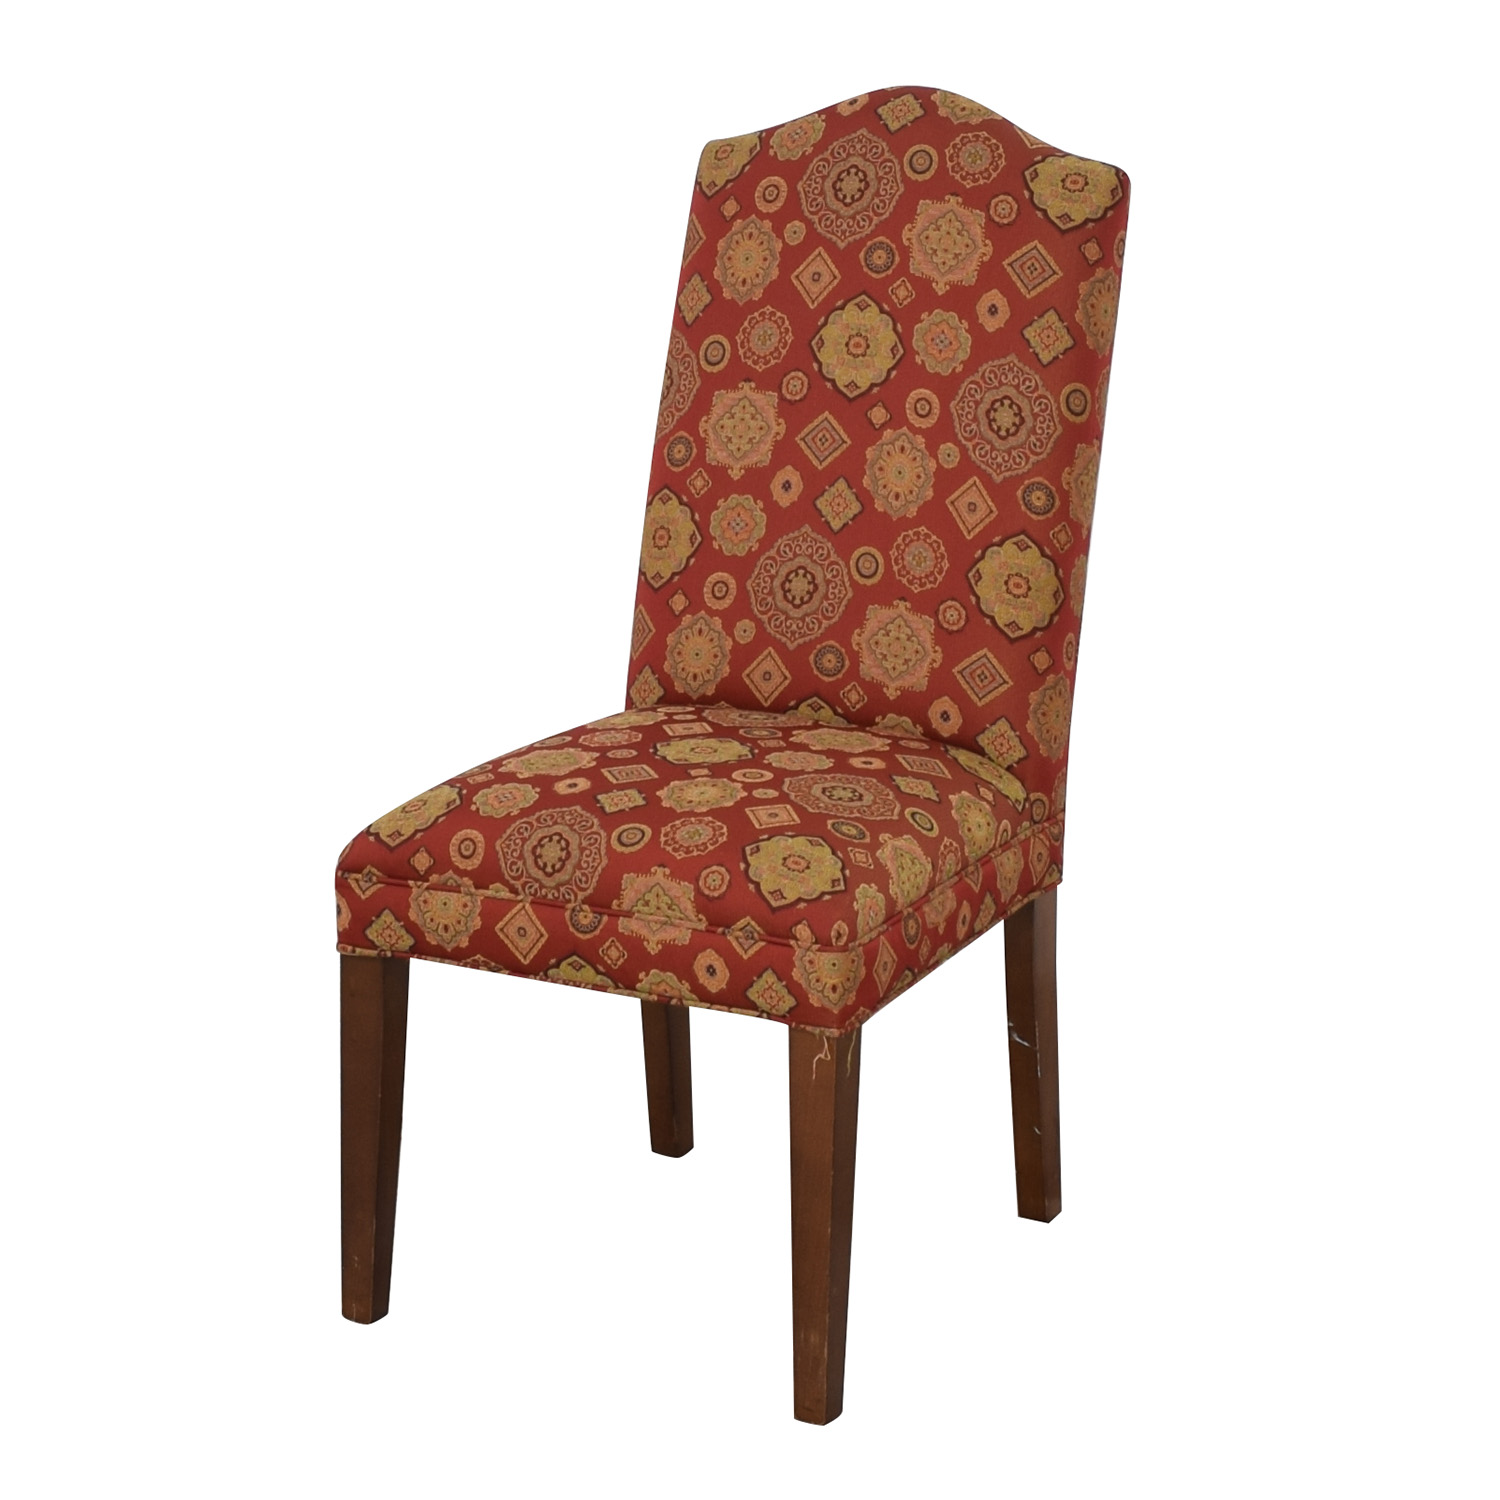 shop Ethan Allen Upholstered Dining Chairs Ethan Allen